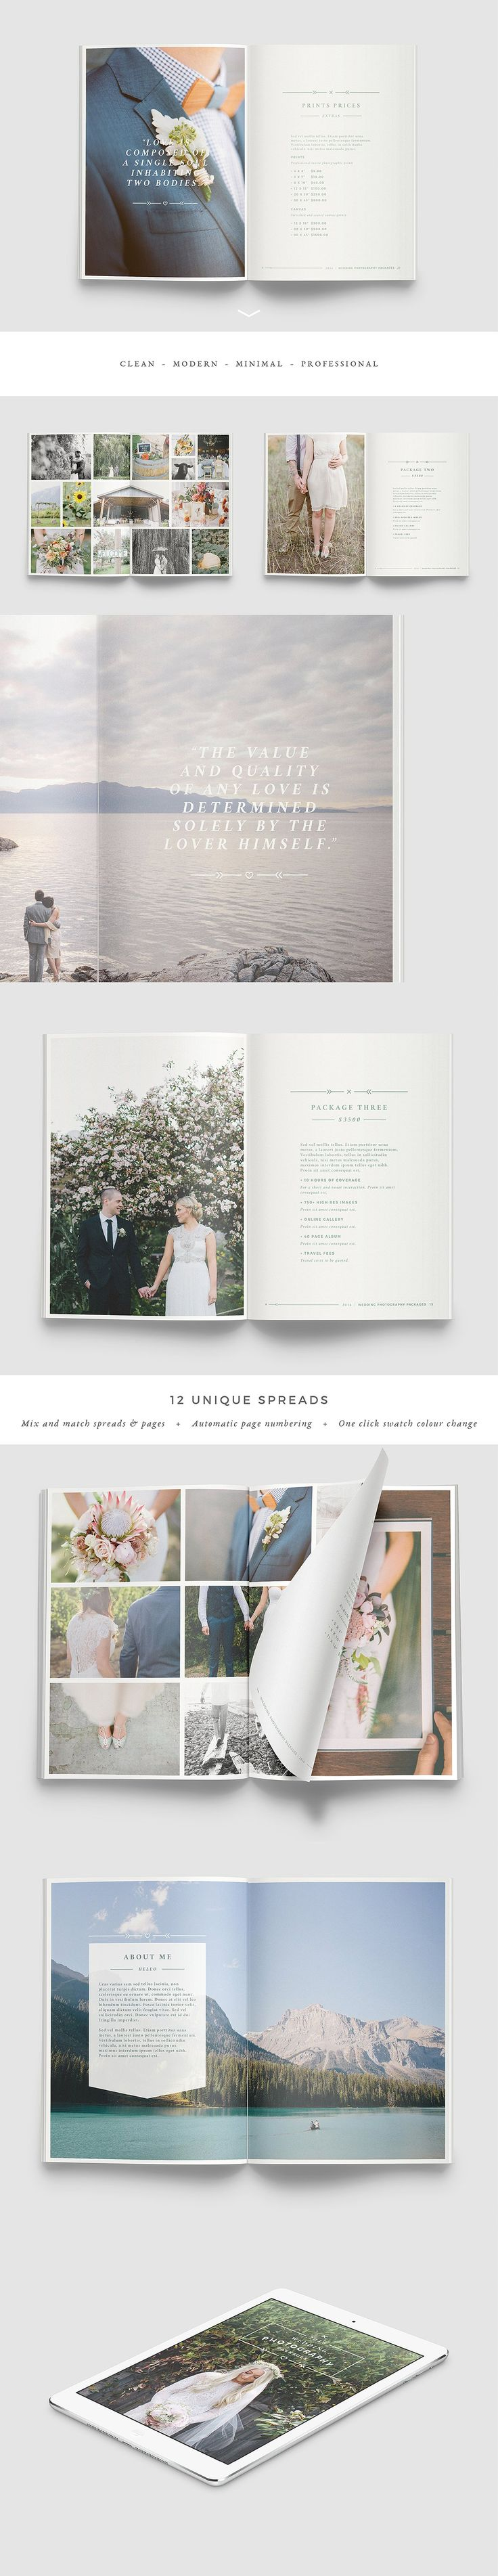 WANDERERS Photography Brochure by Forty6and2 on @creativemarket